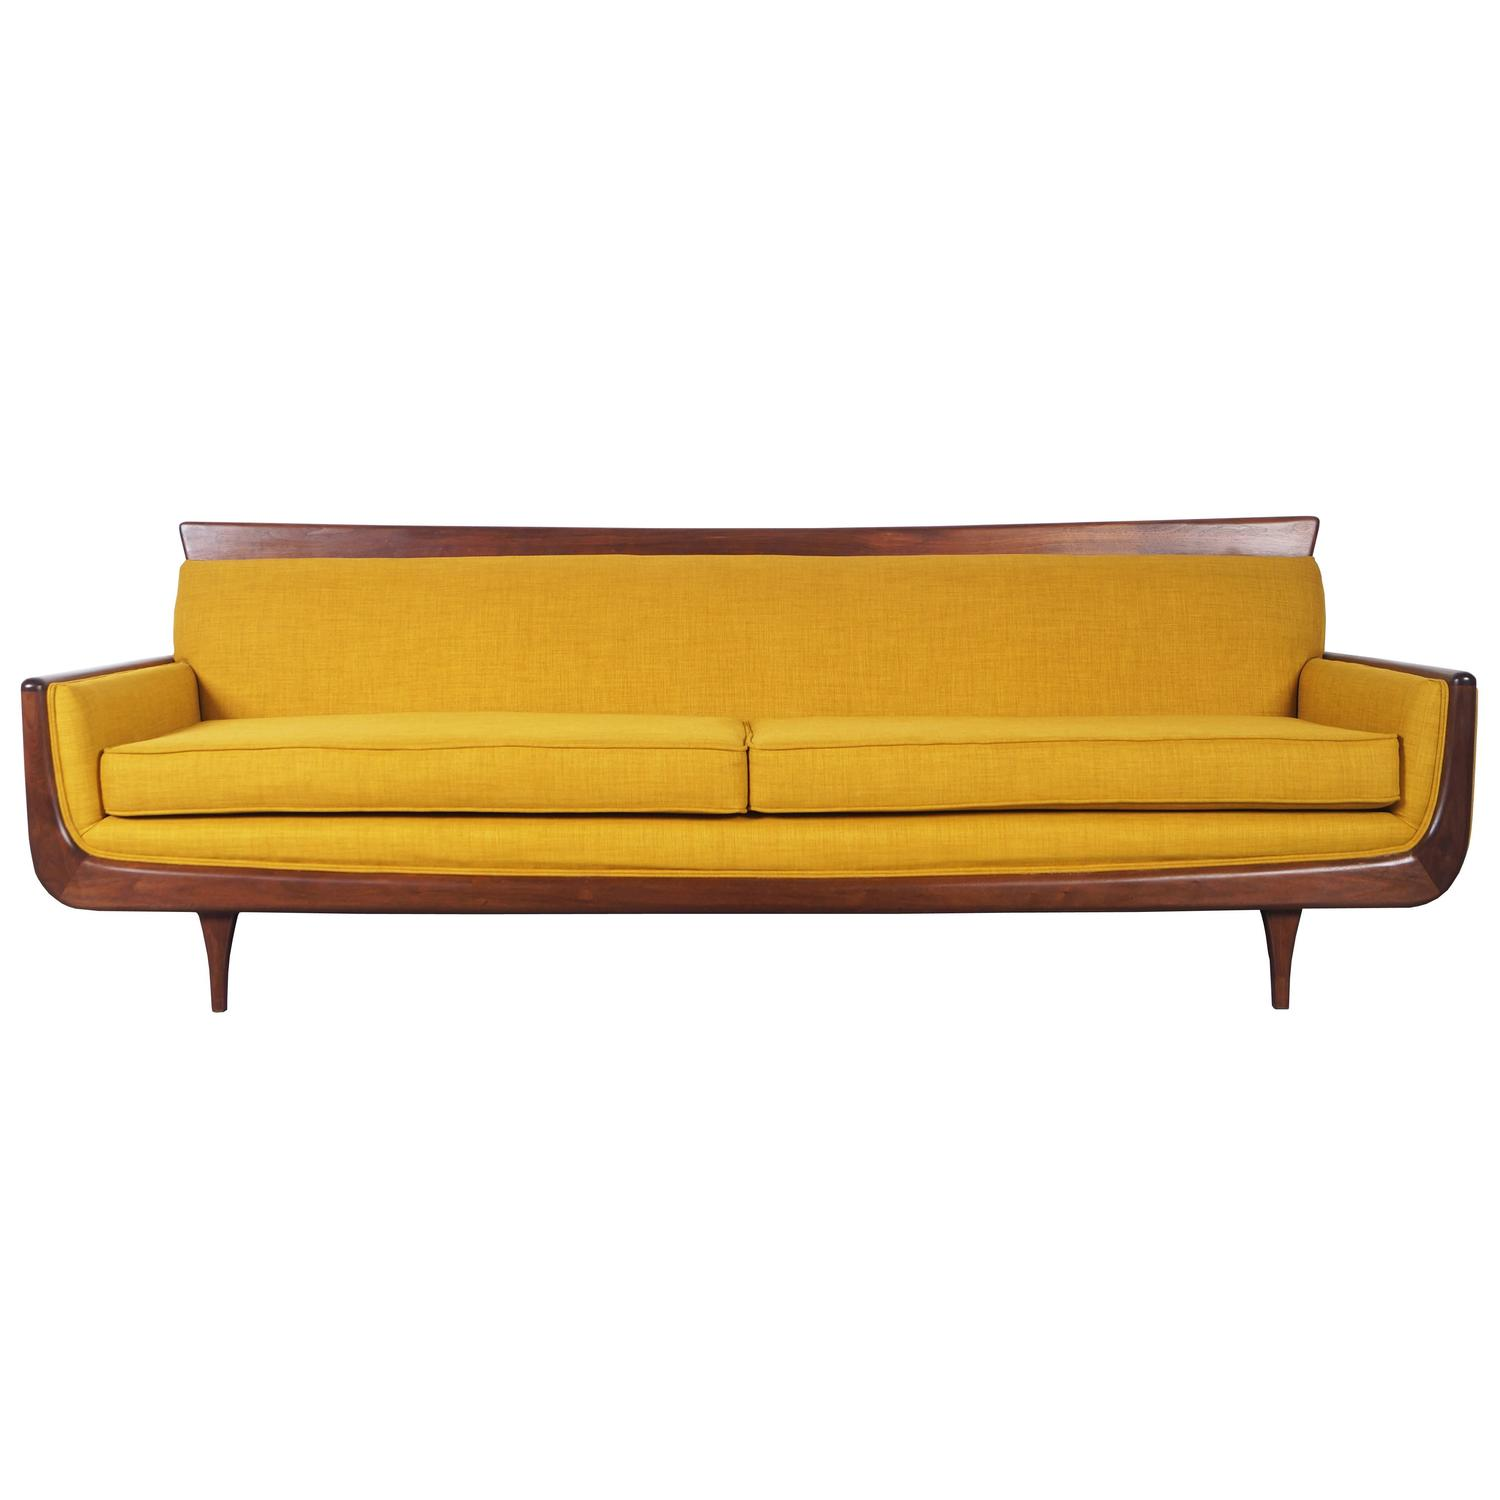 Mid century modern walnut sofa at 1stdibs for Mid century modern sofas